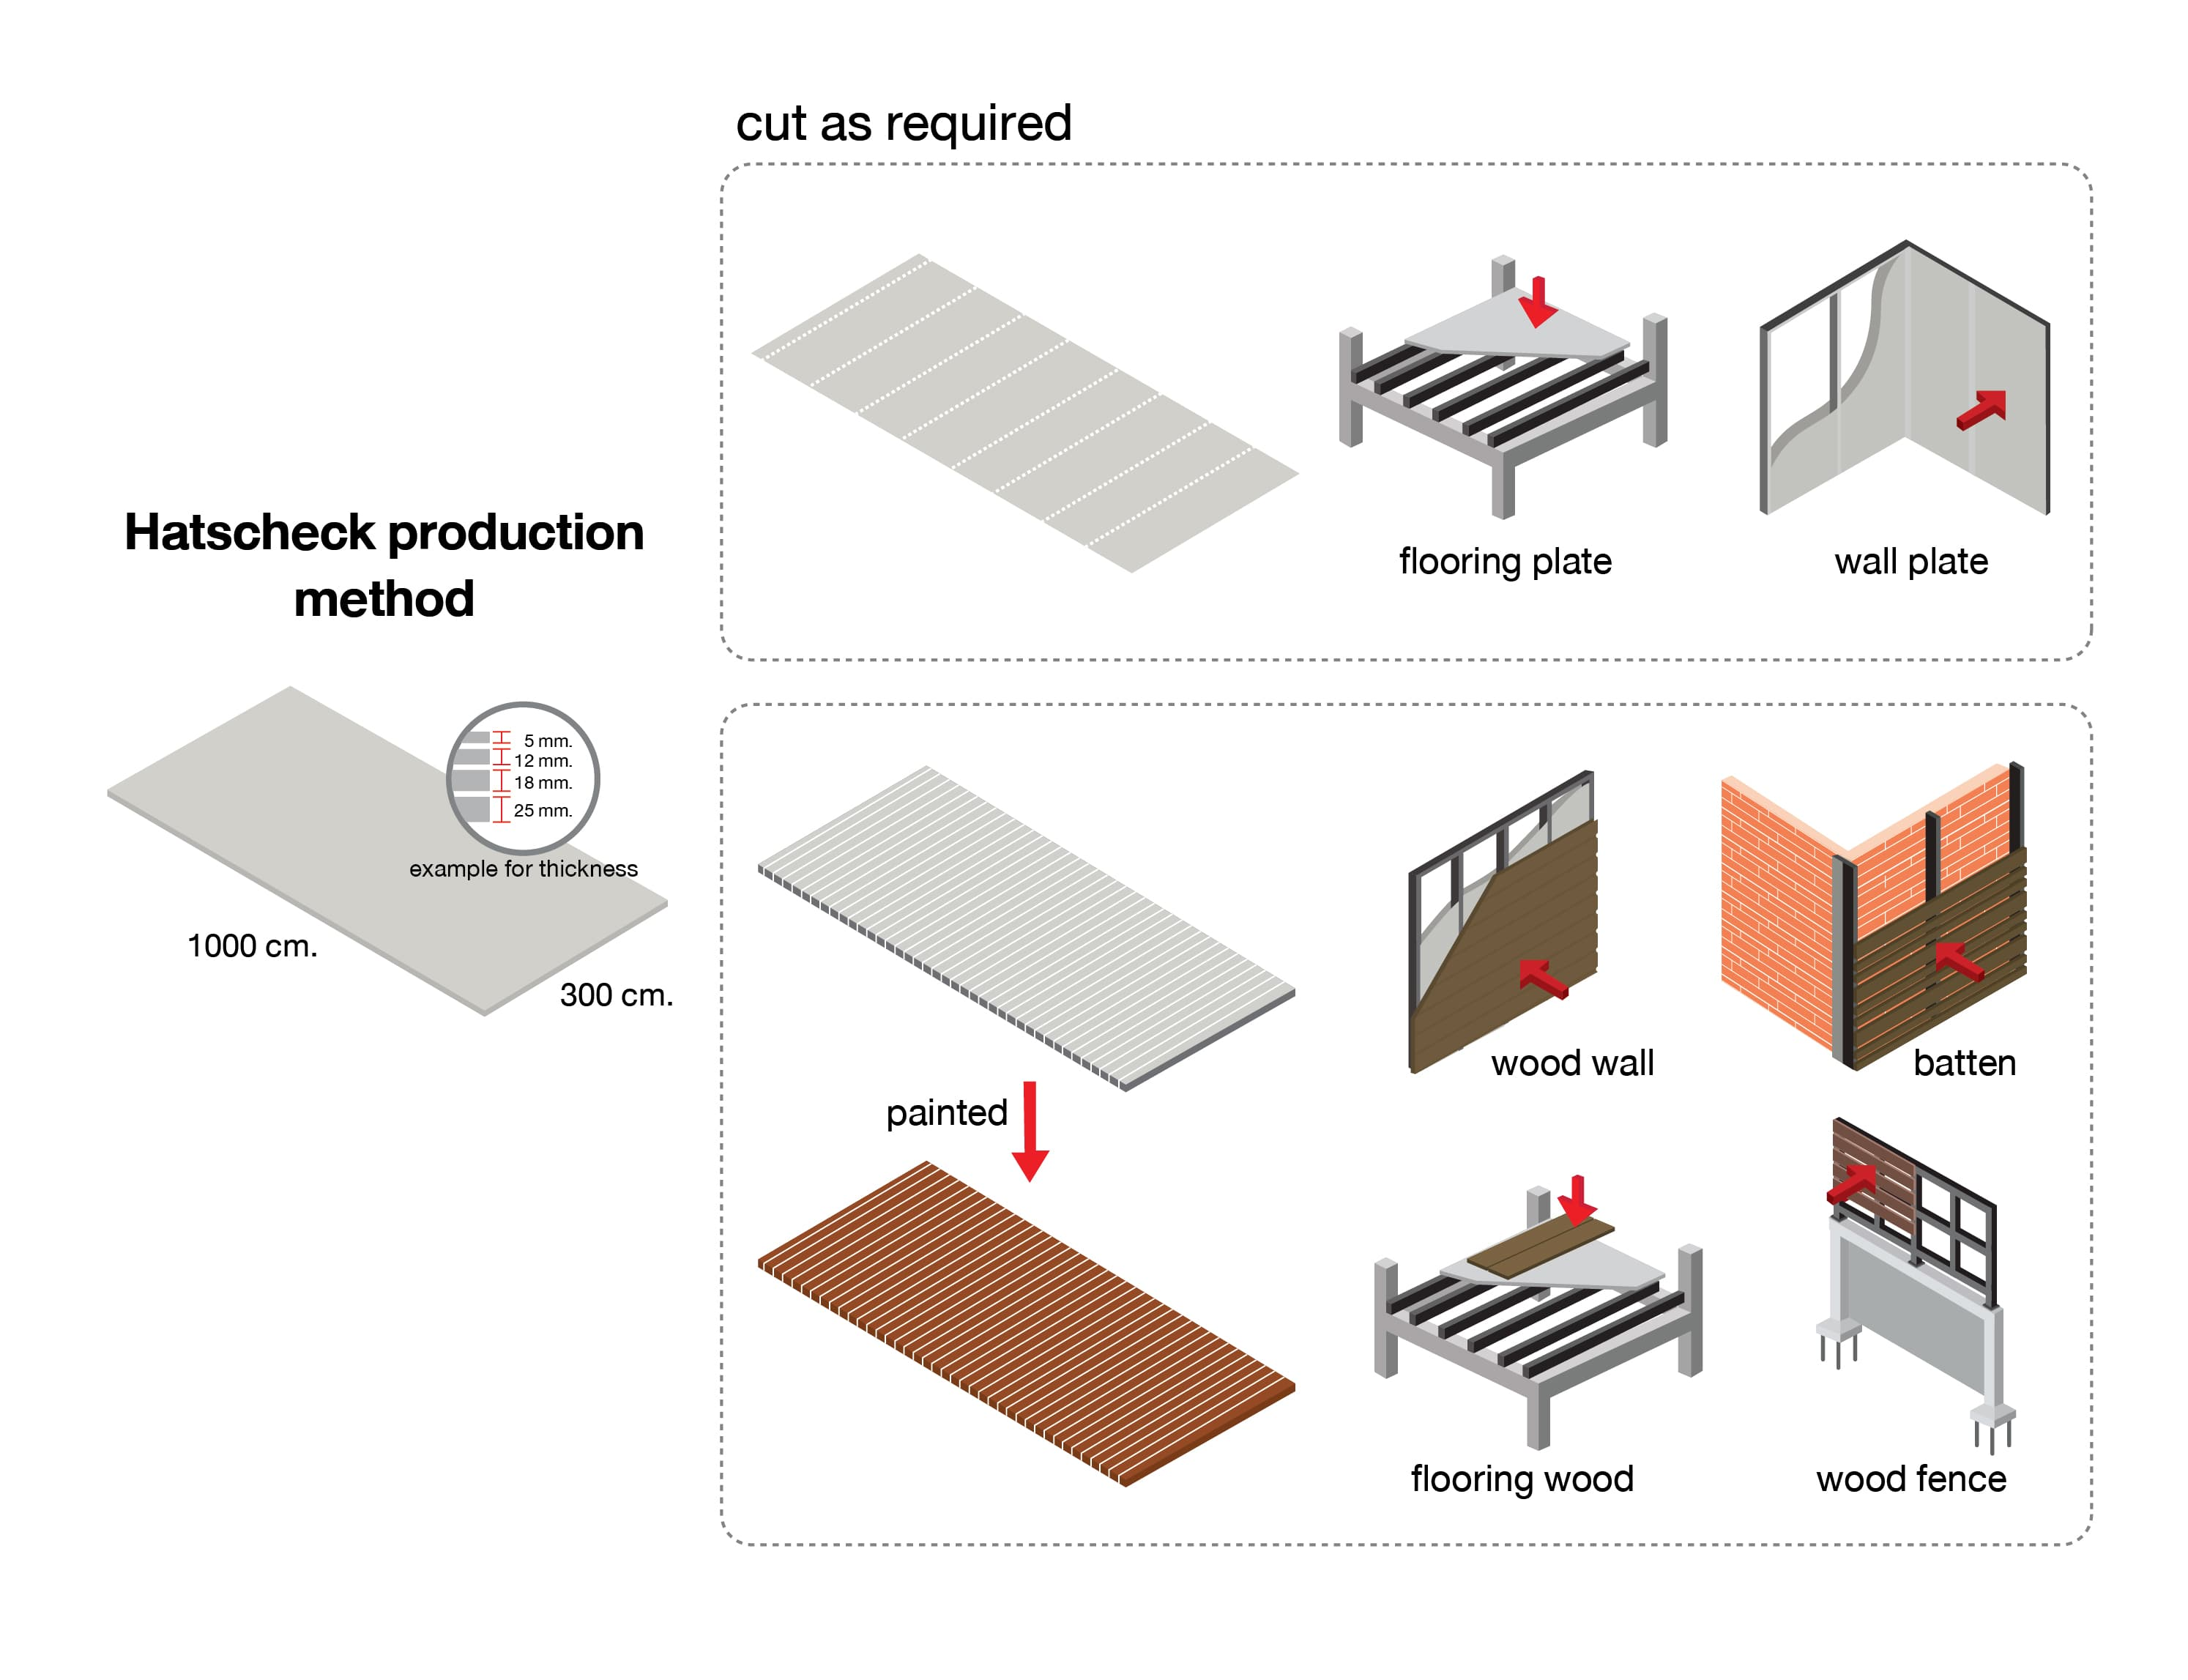 How to install Fiber Cement Board in proper way